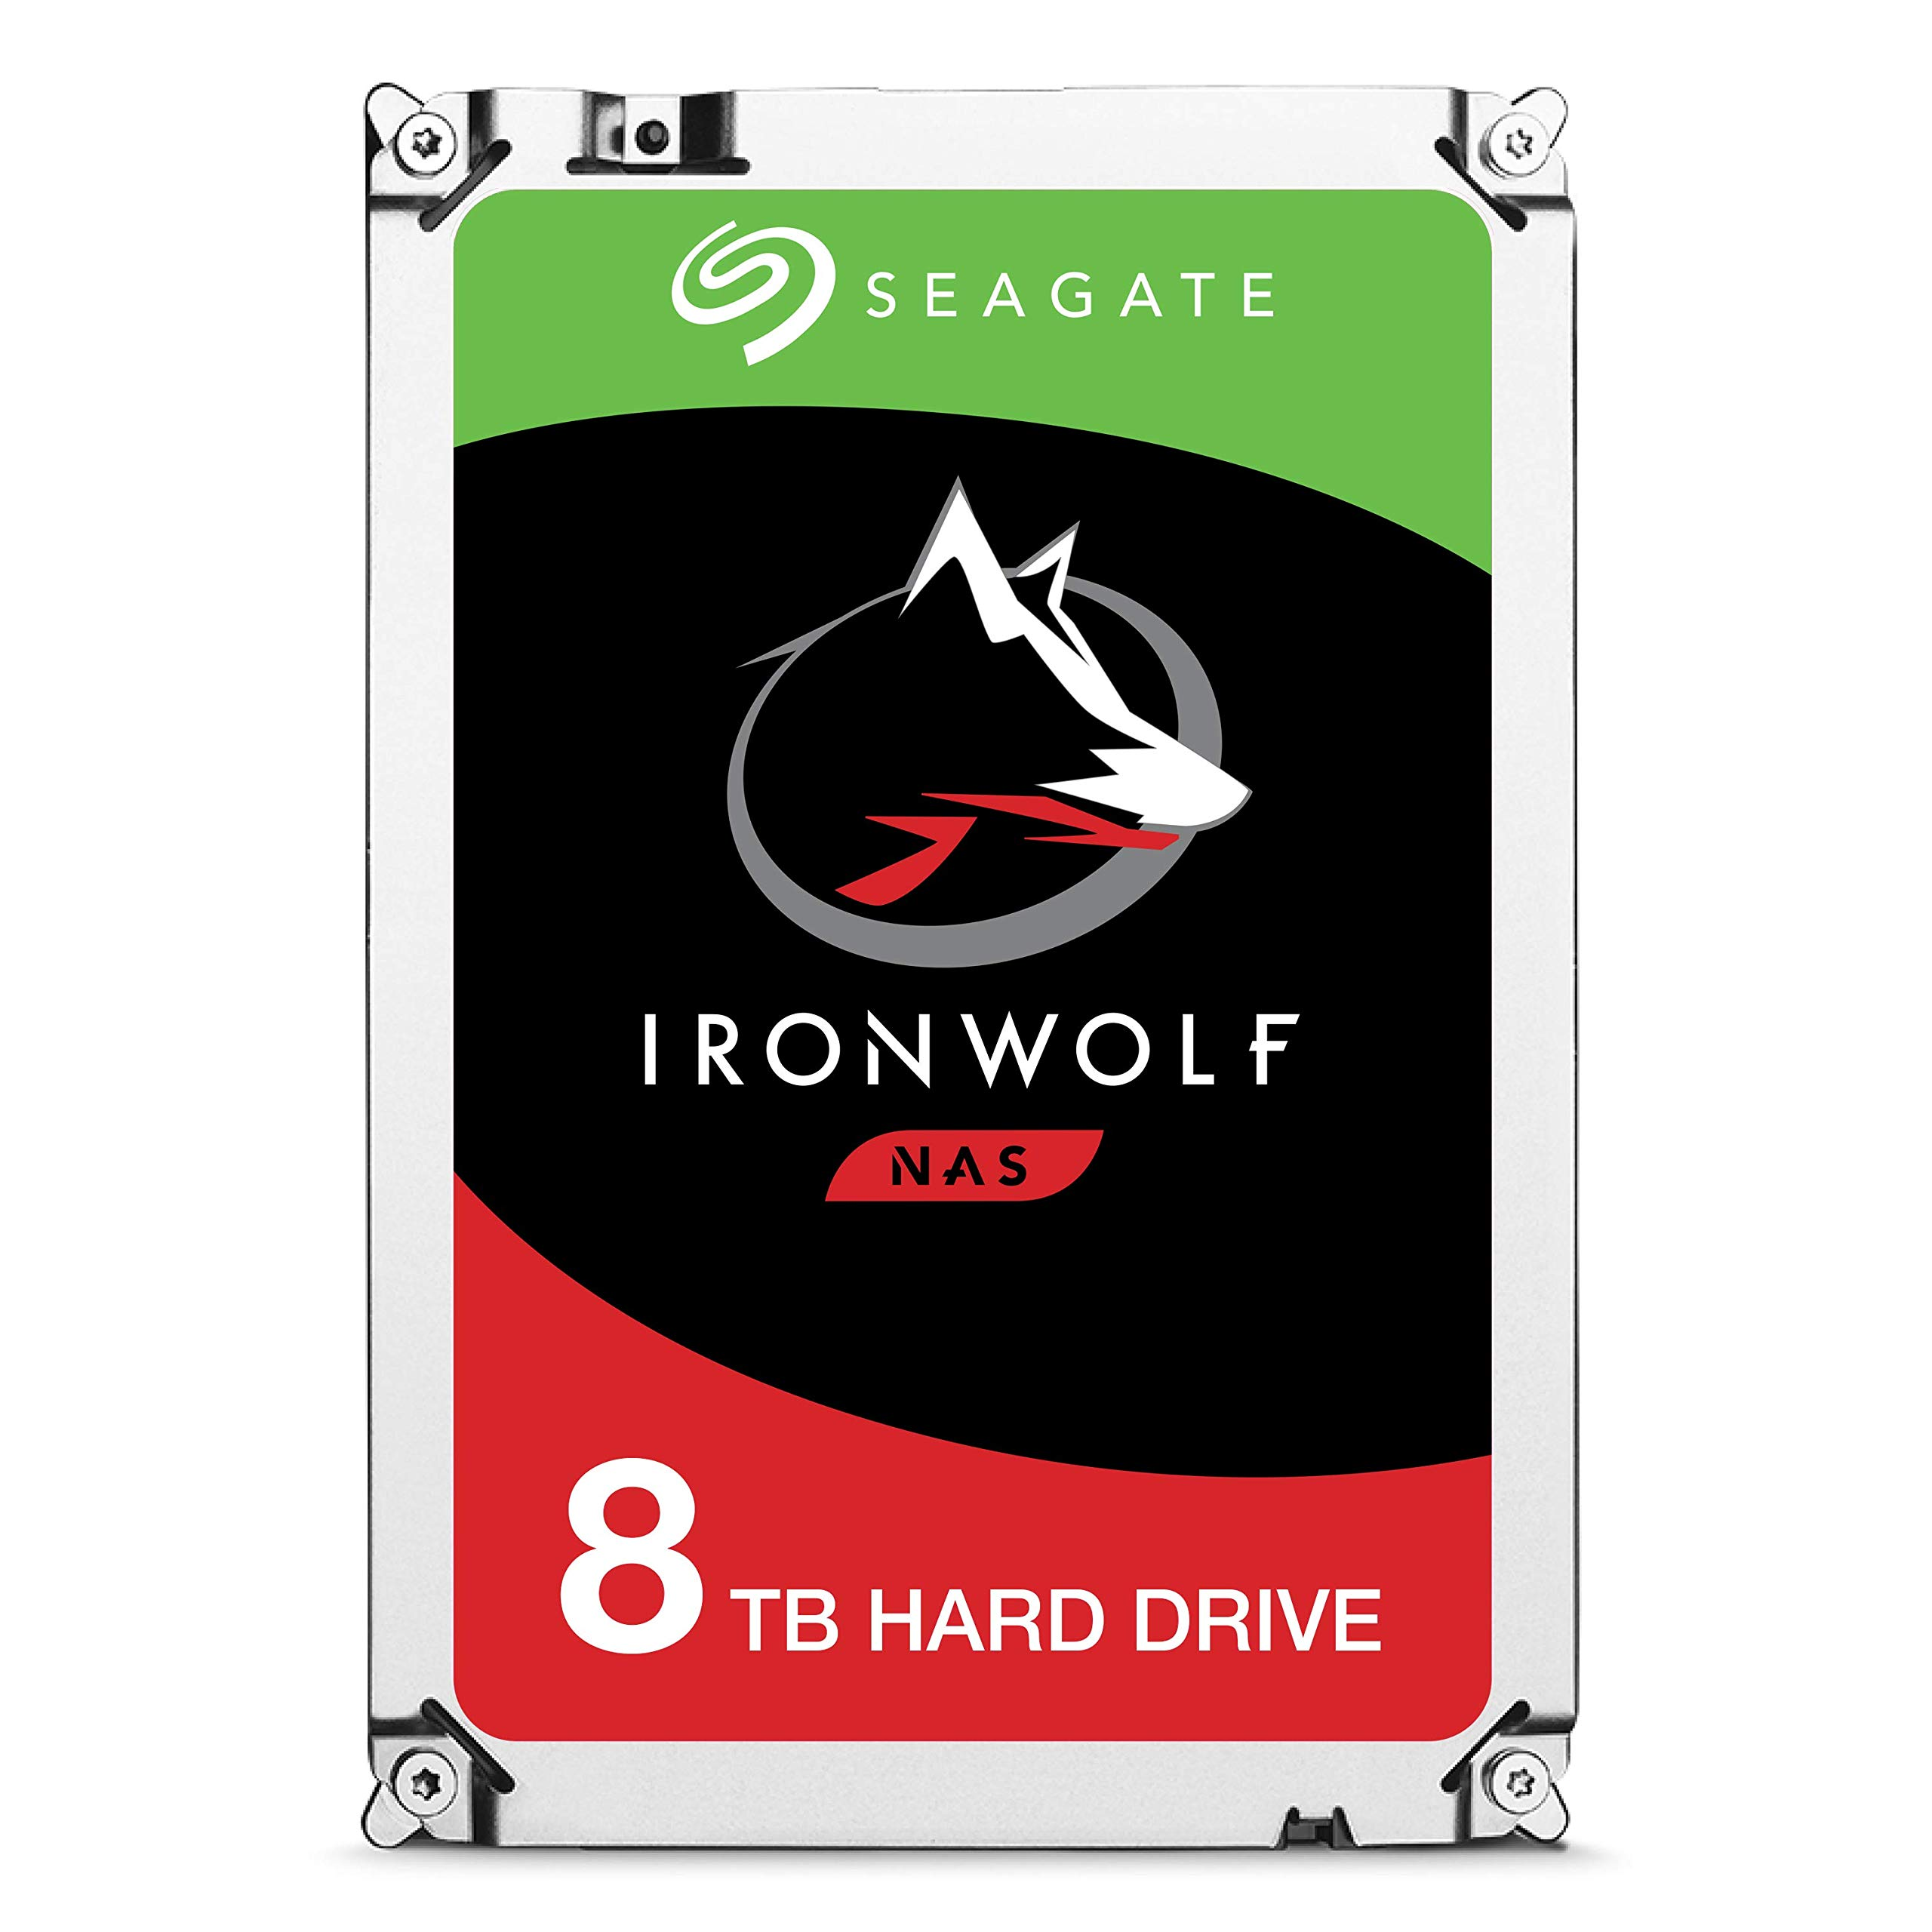 Seagate IronWolf 8 TB NAS RAID Internal Hard Drive - 7,200 RPM SATA 6 Gb/s 3.5-inch - Frustration Free Packaging  (ST8000VN0022)